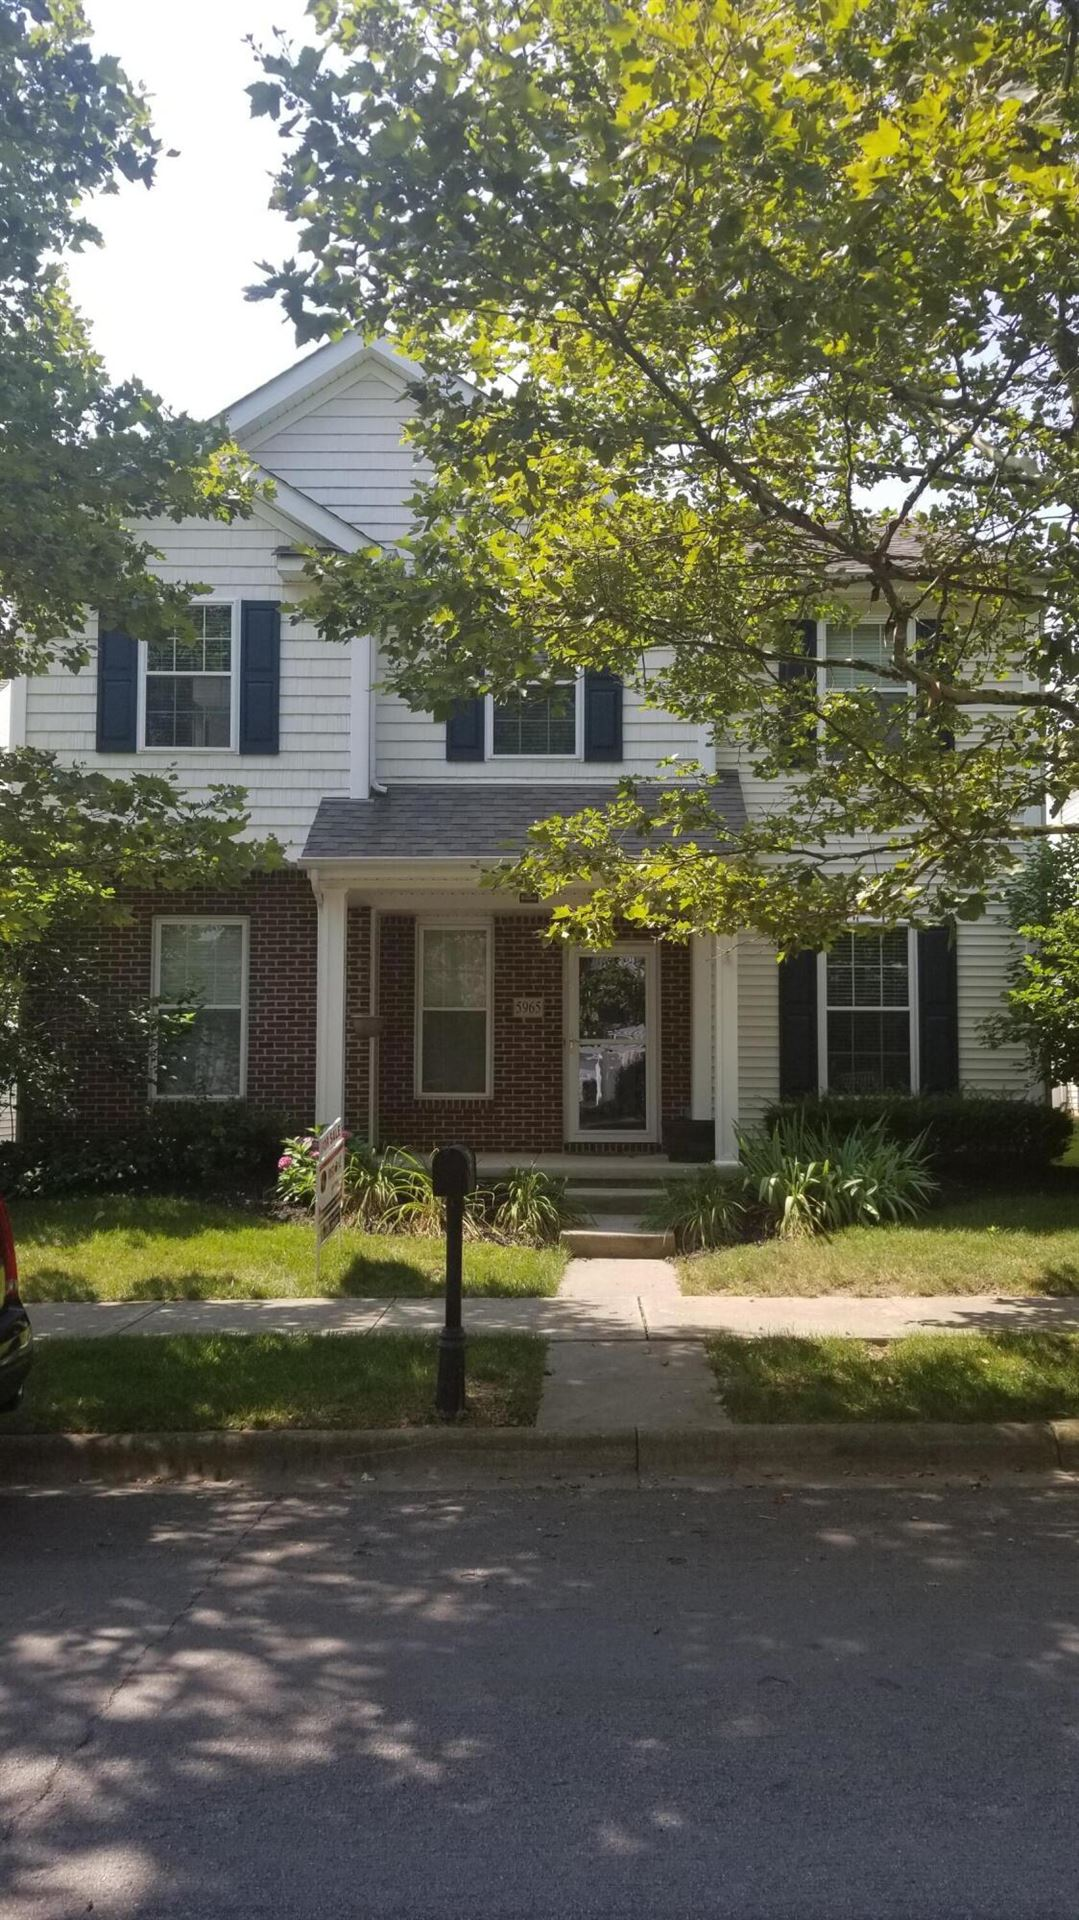 Photo of 5965 Mealla Road, Westerville, OH 43081 (MLS # 221028533)